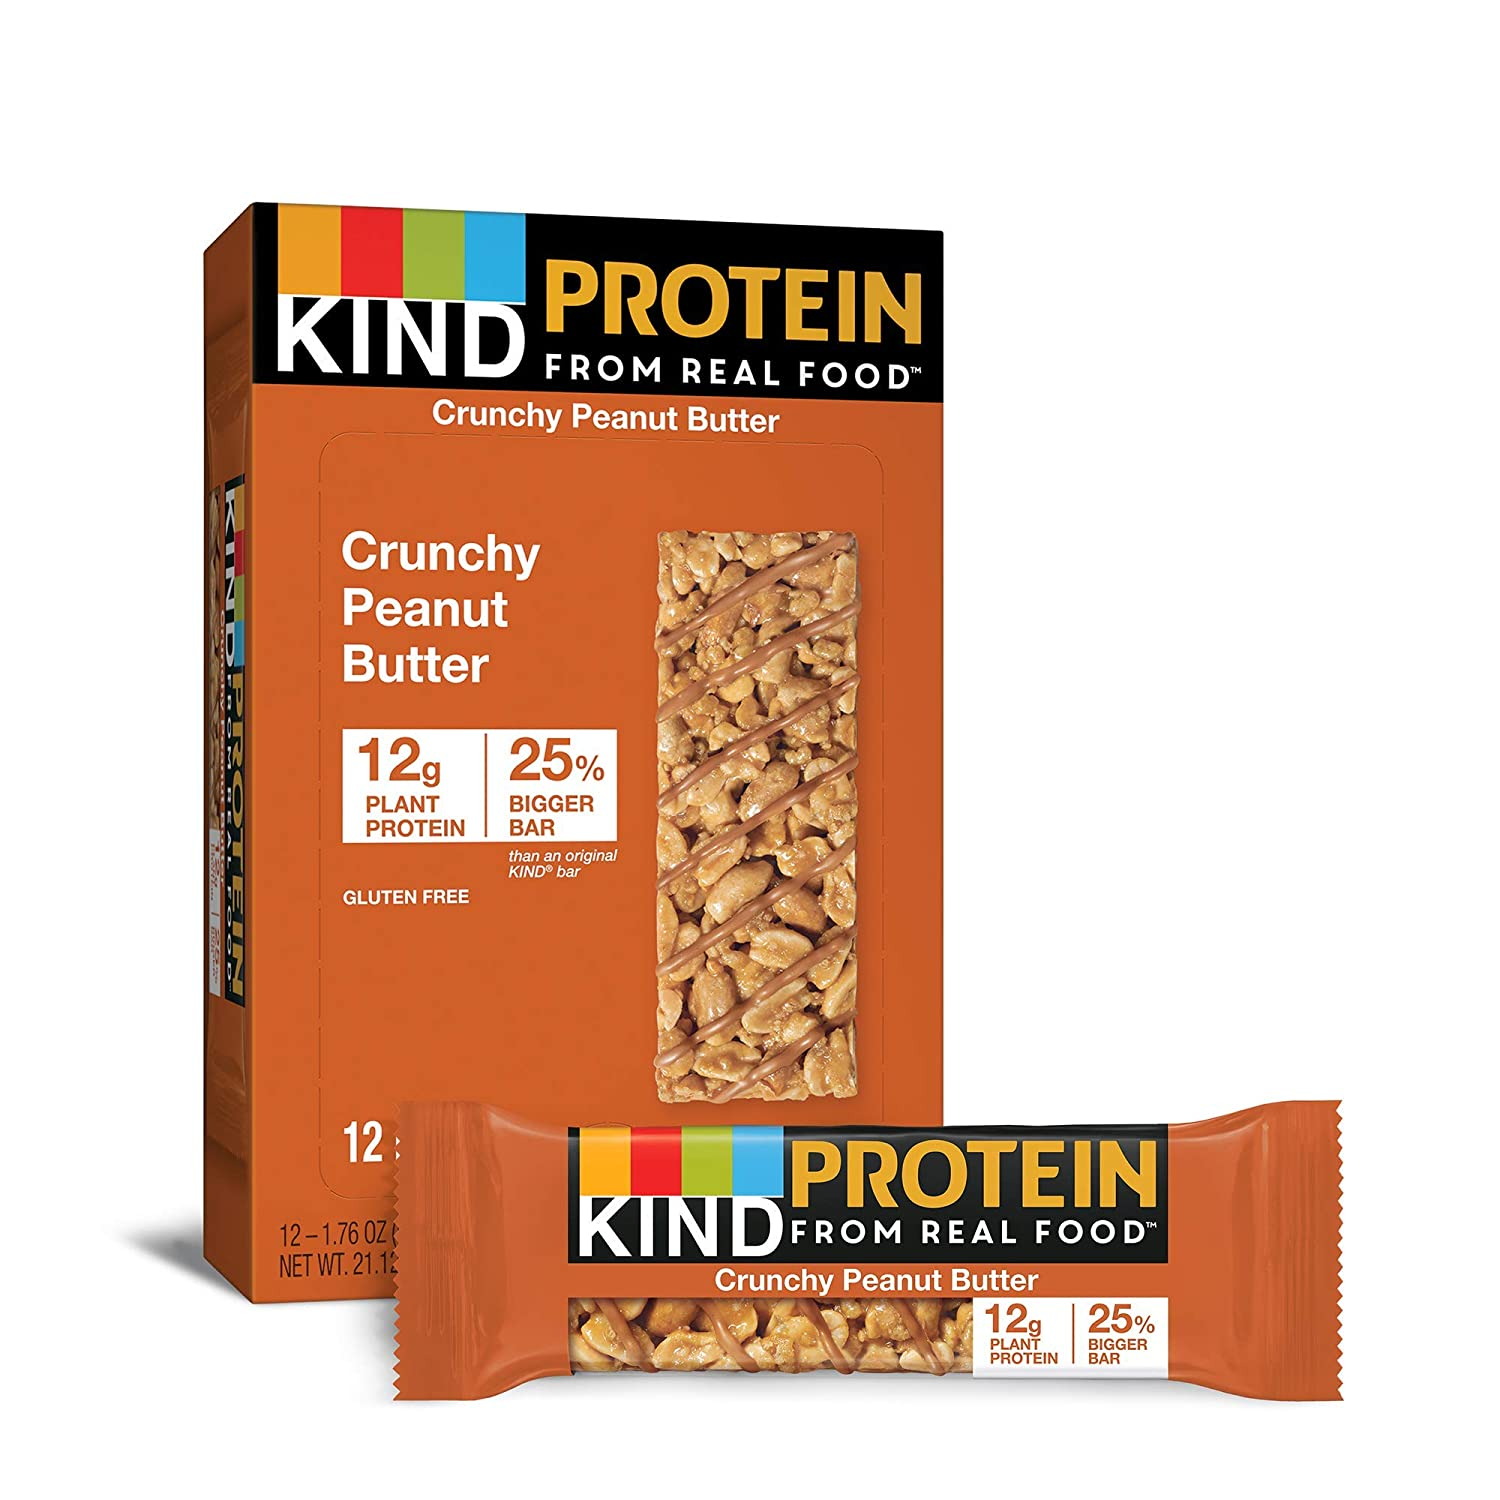 KIND Protein Energy Bars for hiking